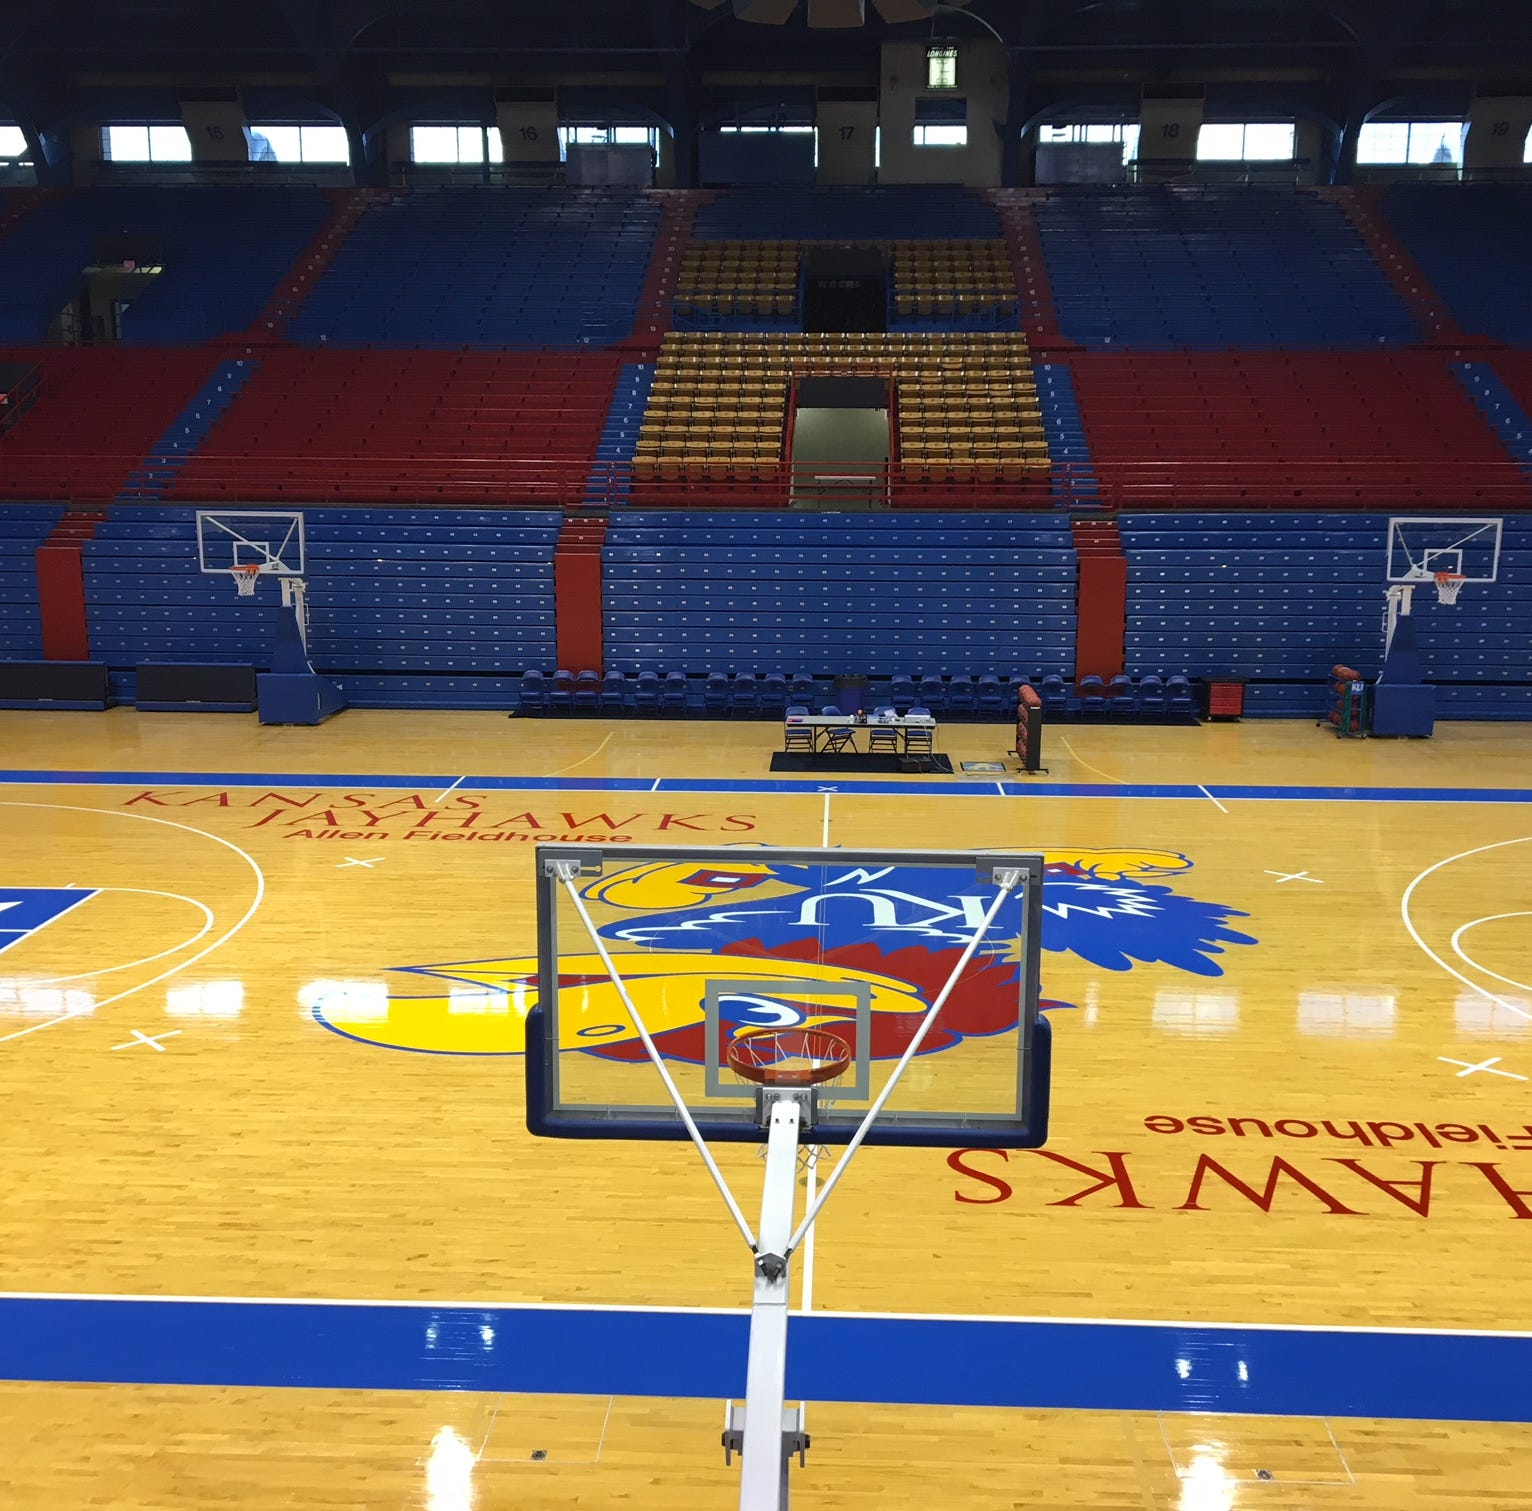 Rutgers football: A postcard from Lawrence, where Kansas basketball, not football, is king